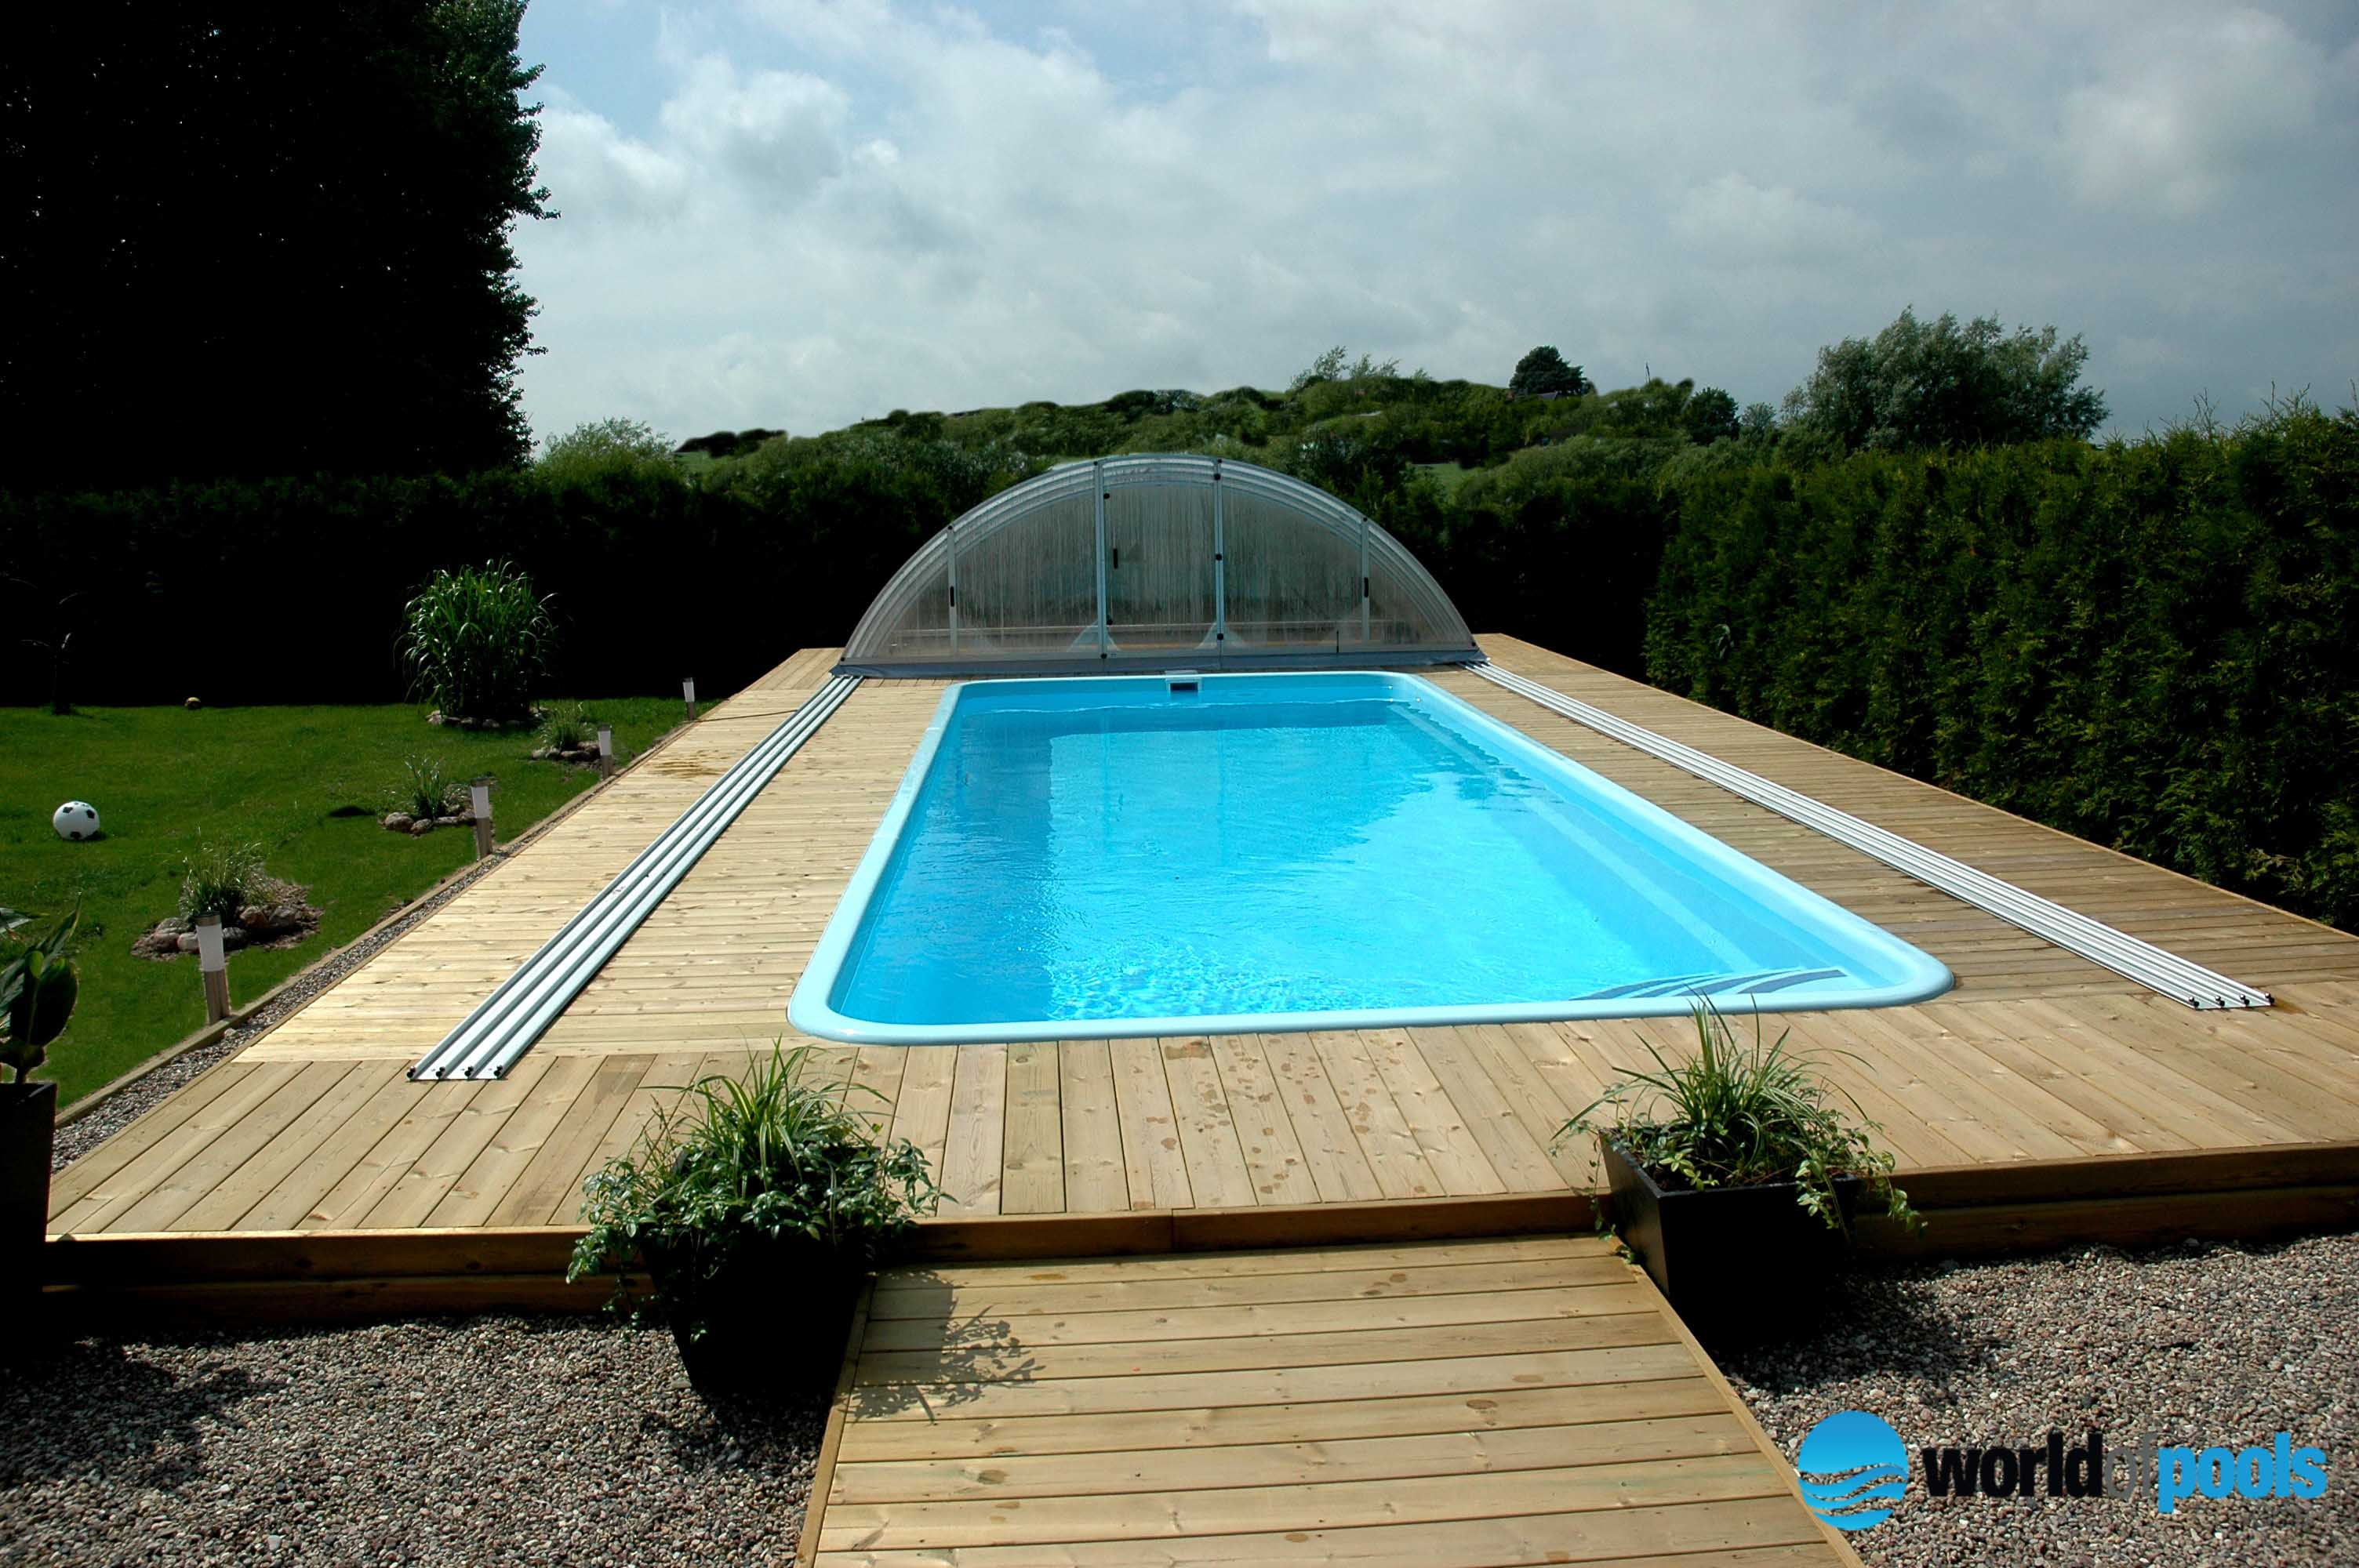 Angebot pools f r garten swimmingpools fertigschwimmbecken for Pool design company polen